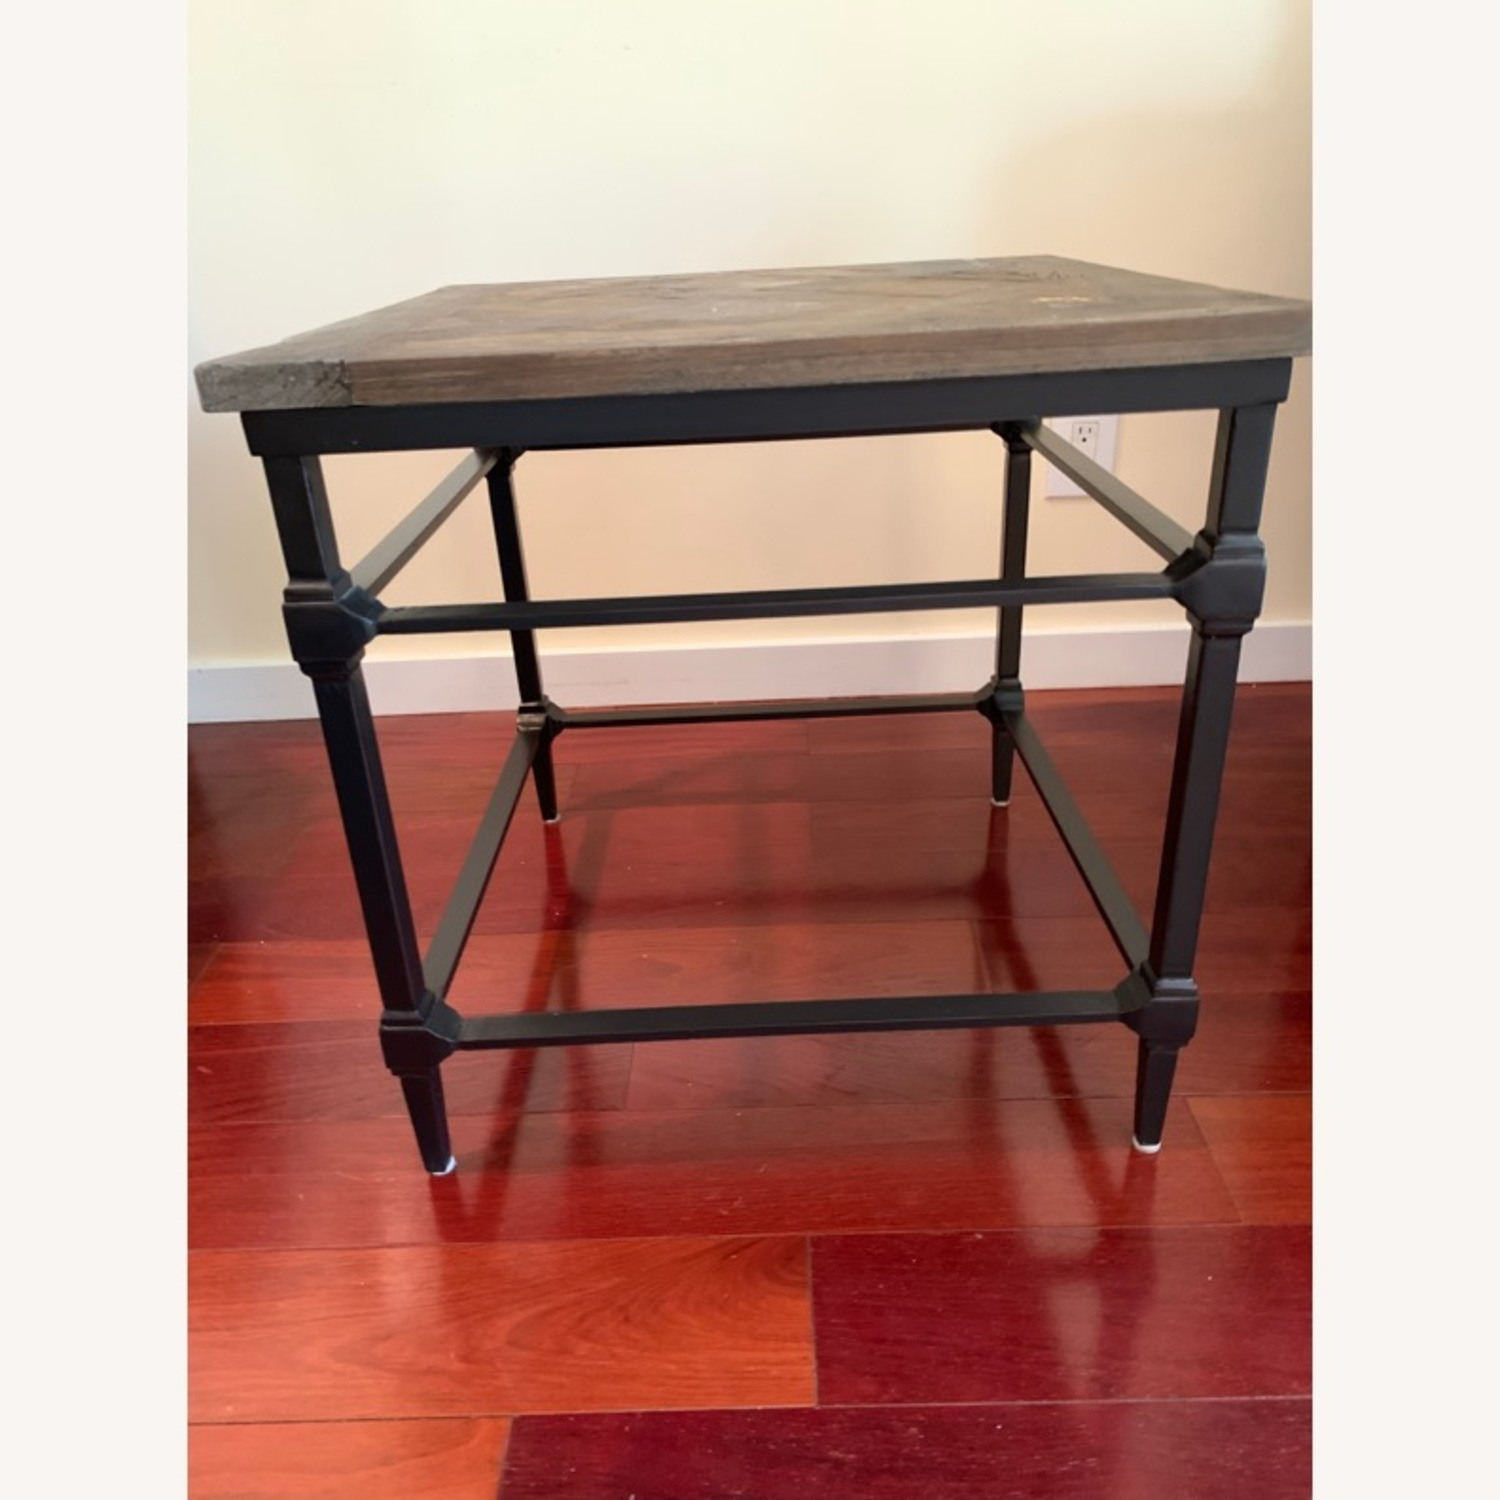 Pottery Barn Parquet End Table - image-4